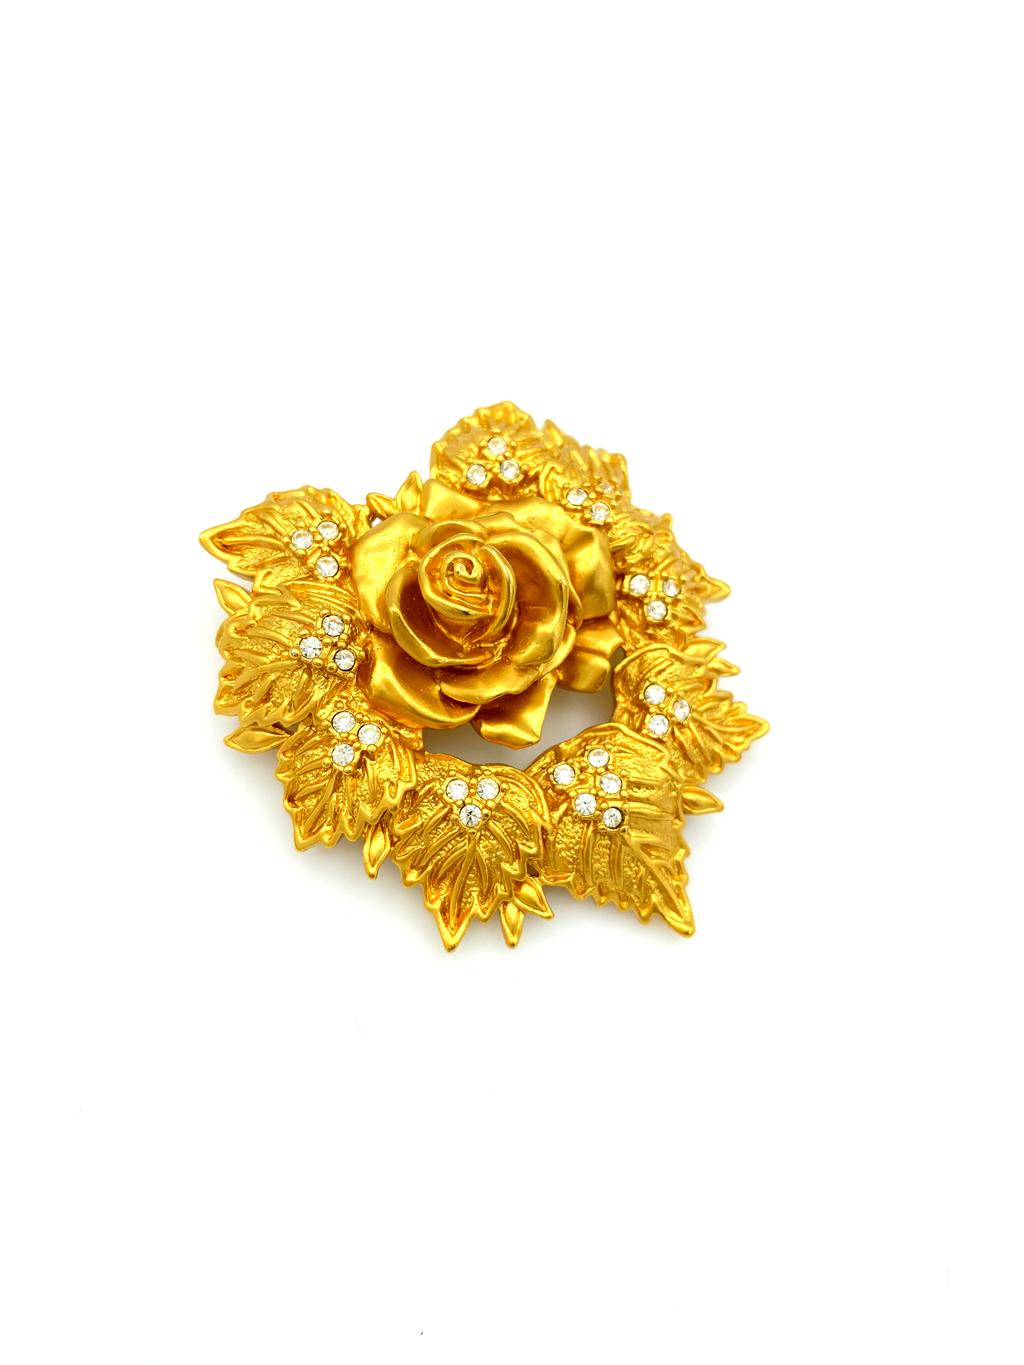 Elizabeth Taylor Gold Rose Love Blooms Vintage Brooch-Sustainable Fashion with Vintage Style-Trending Designer Fashion-24 Wishes